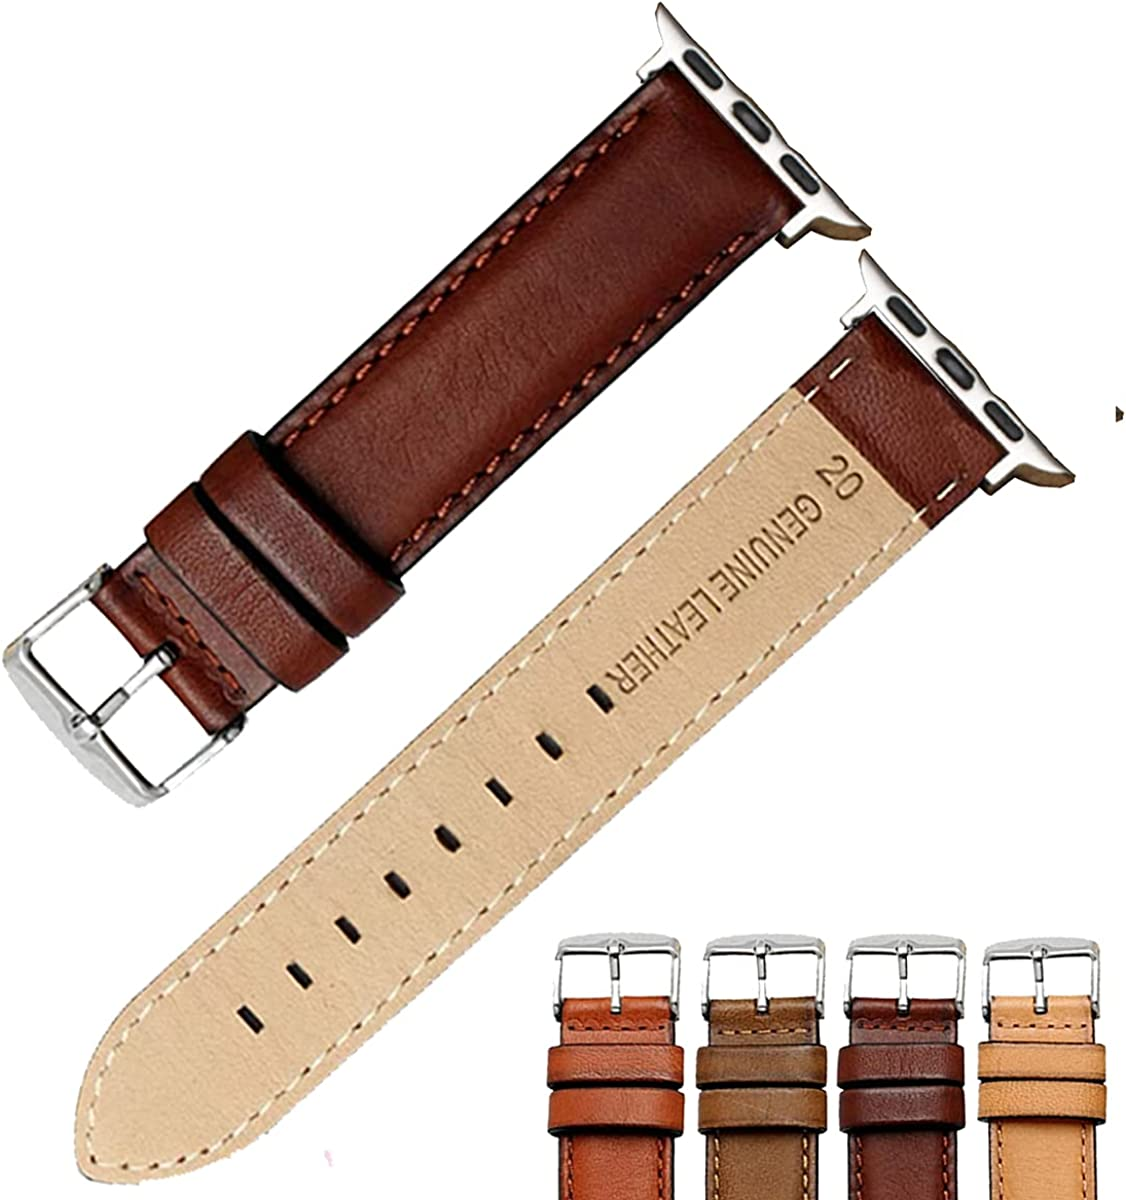 Strapseeker Ash Premium Italian Leather Watch Band for Apple Watch- Genuine Top Grain Calf Leather Watchband- Replacement Watch Bands for Men & Women- Compatible with Apple Watch Series SE, 6, 5, 4 3, 2, 1- 38mm, 42mm- Choose Colours